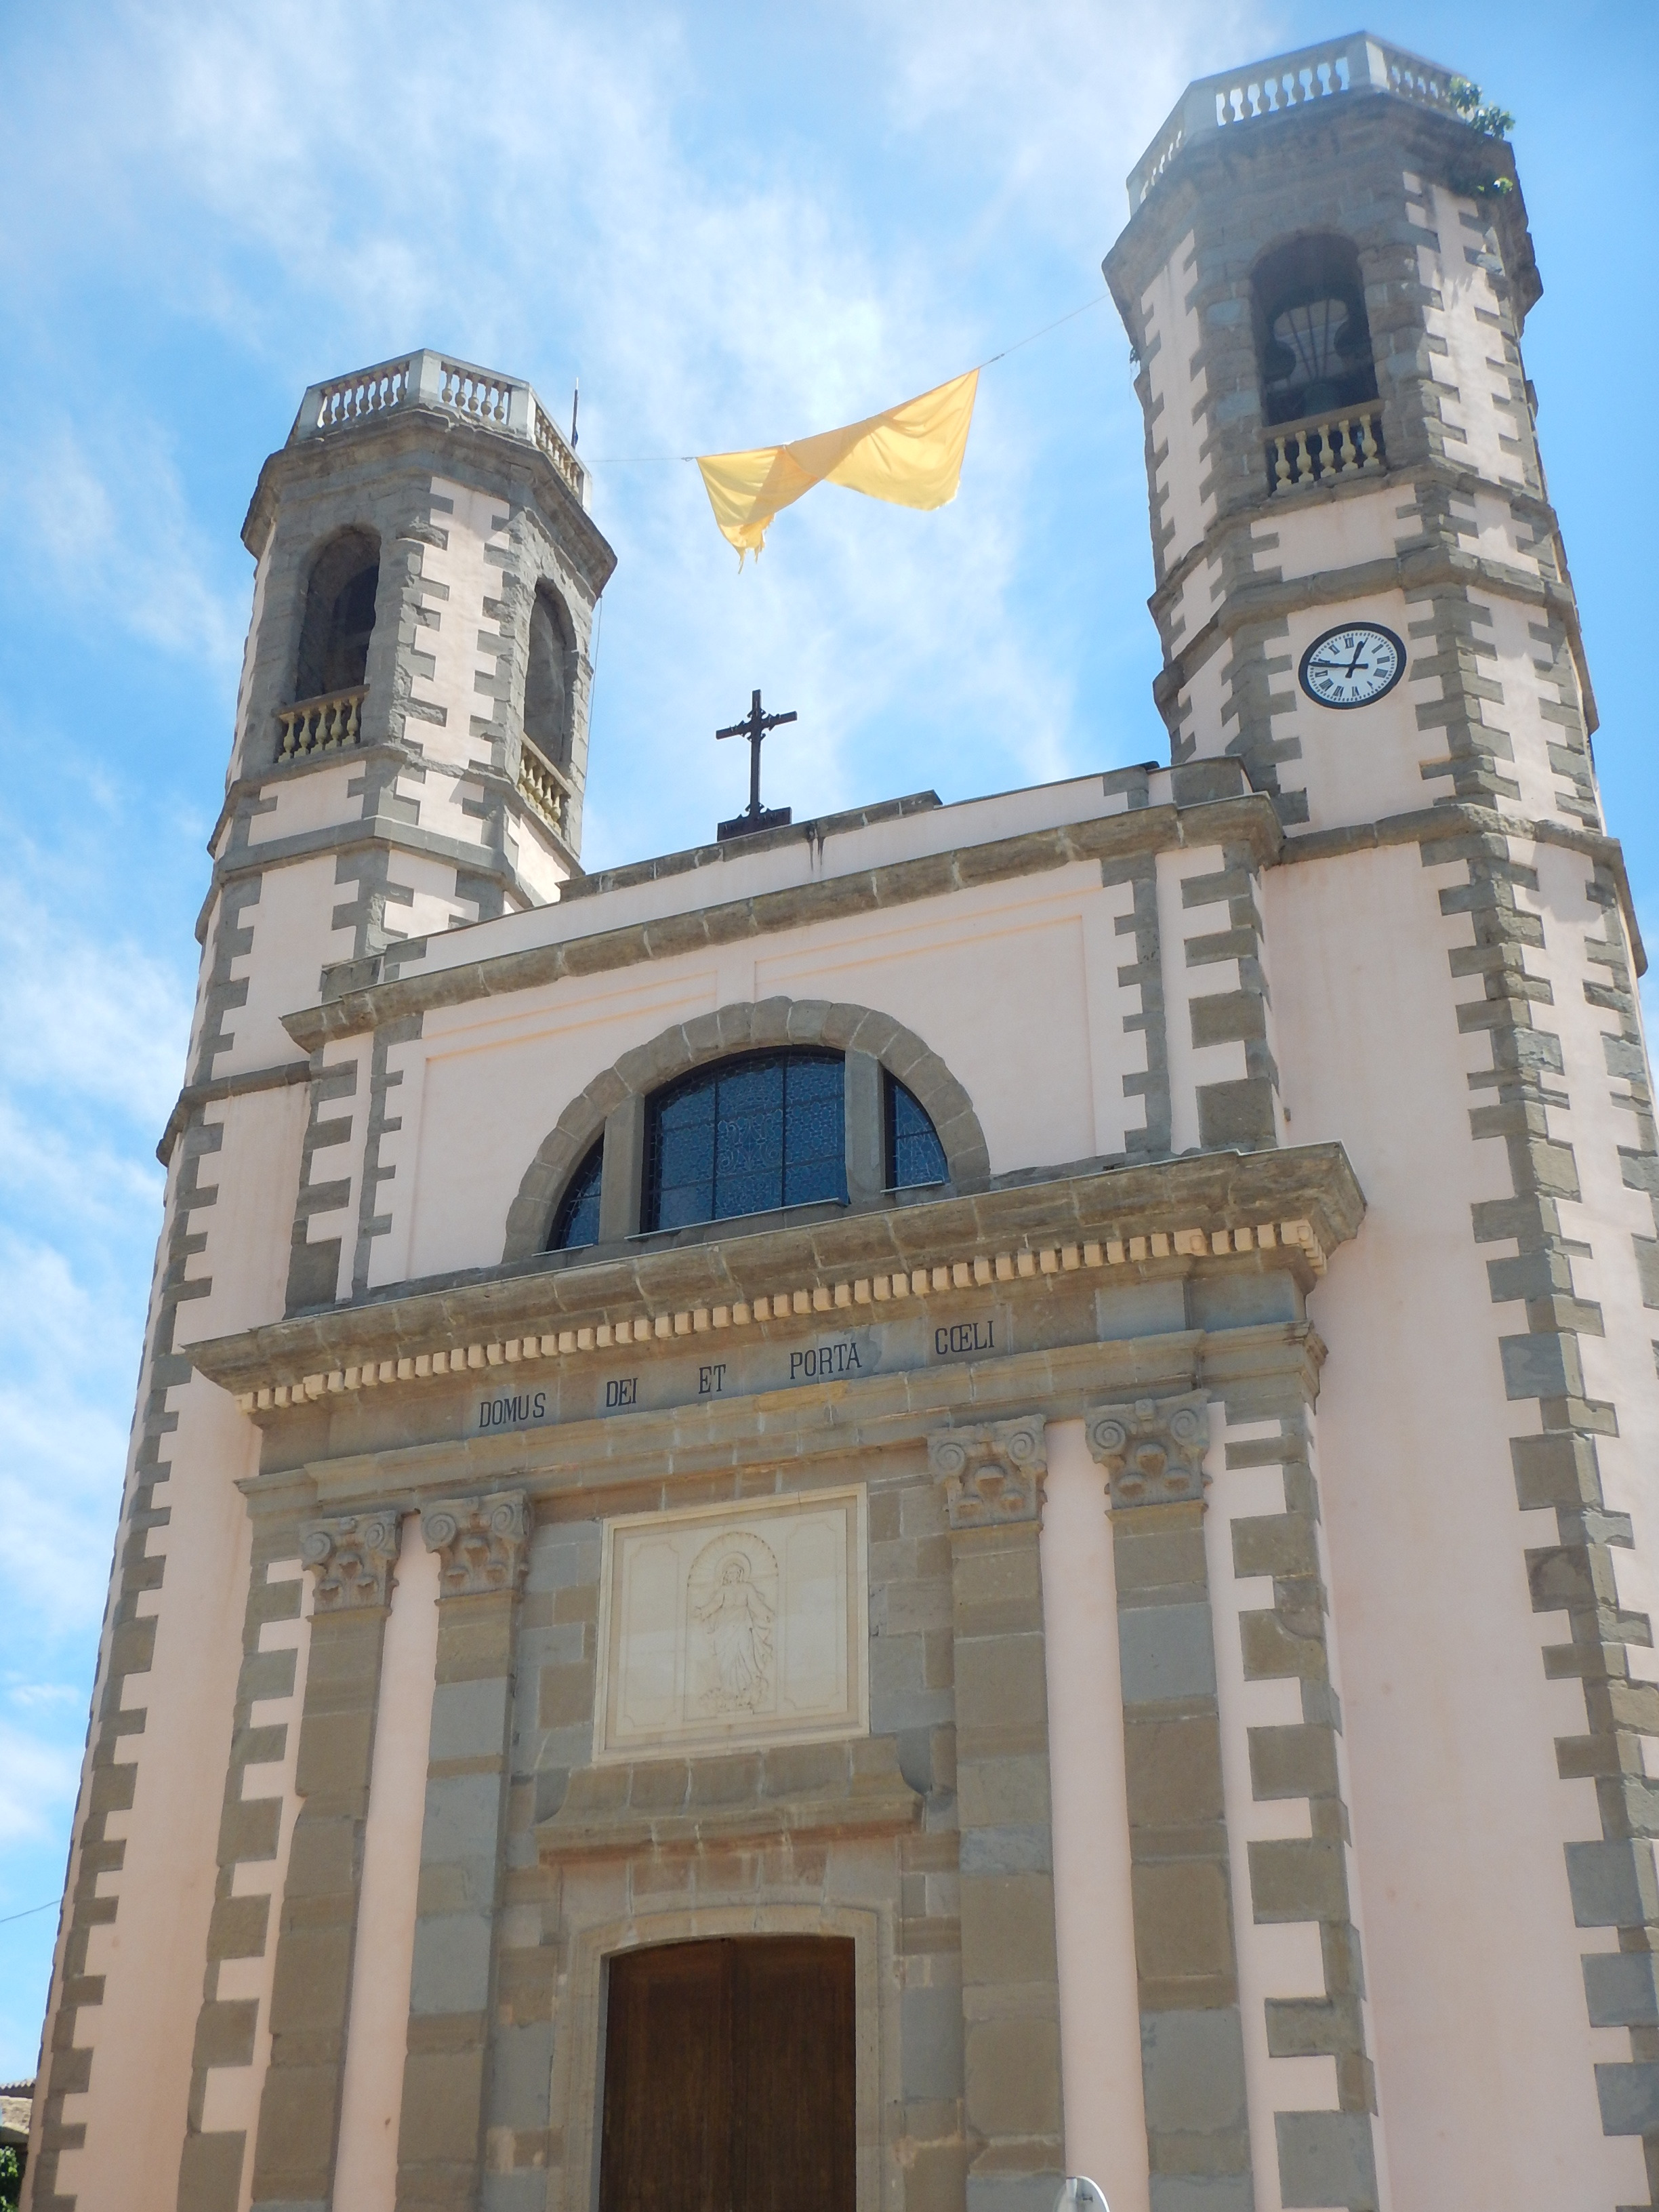 yellow flags and ribbons are everywhere in north east Spain, ie Catalan province. Even on this church.